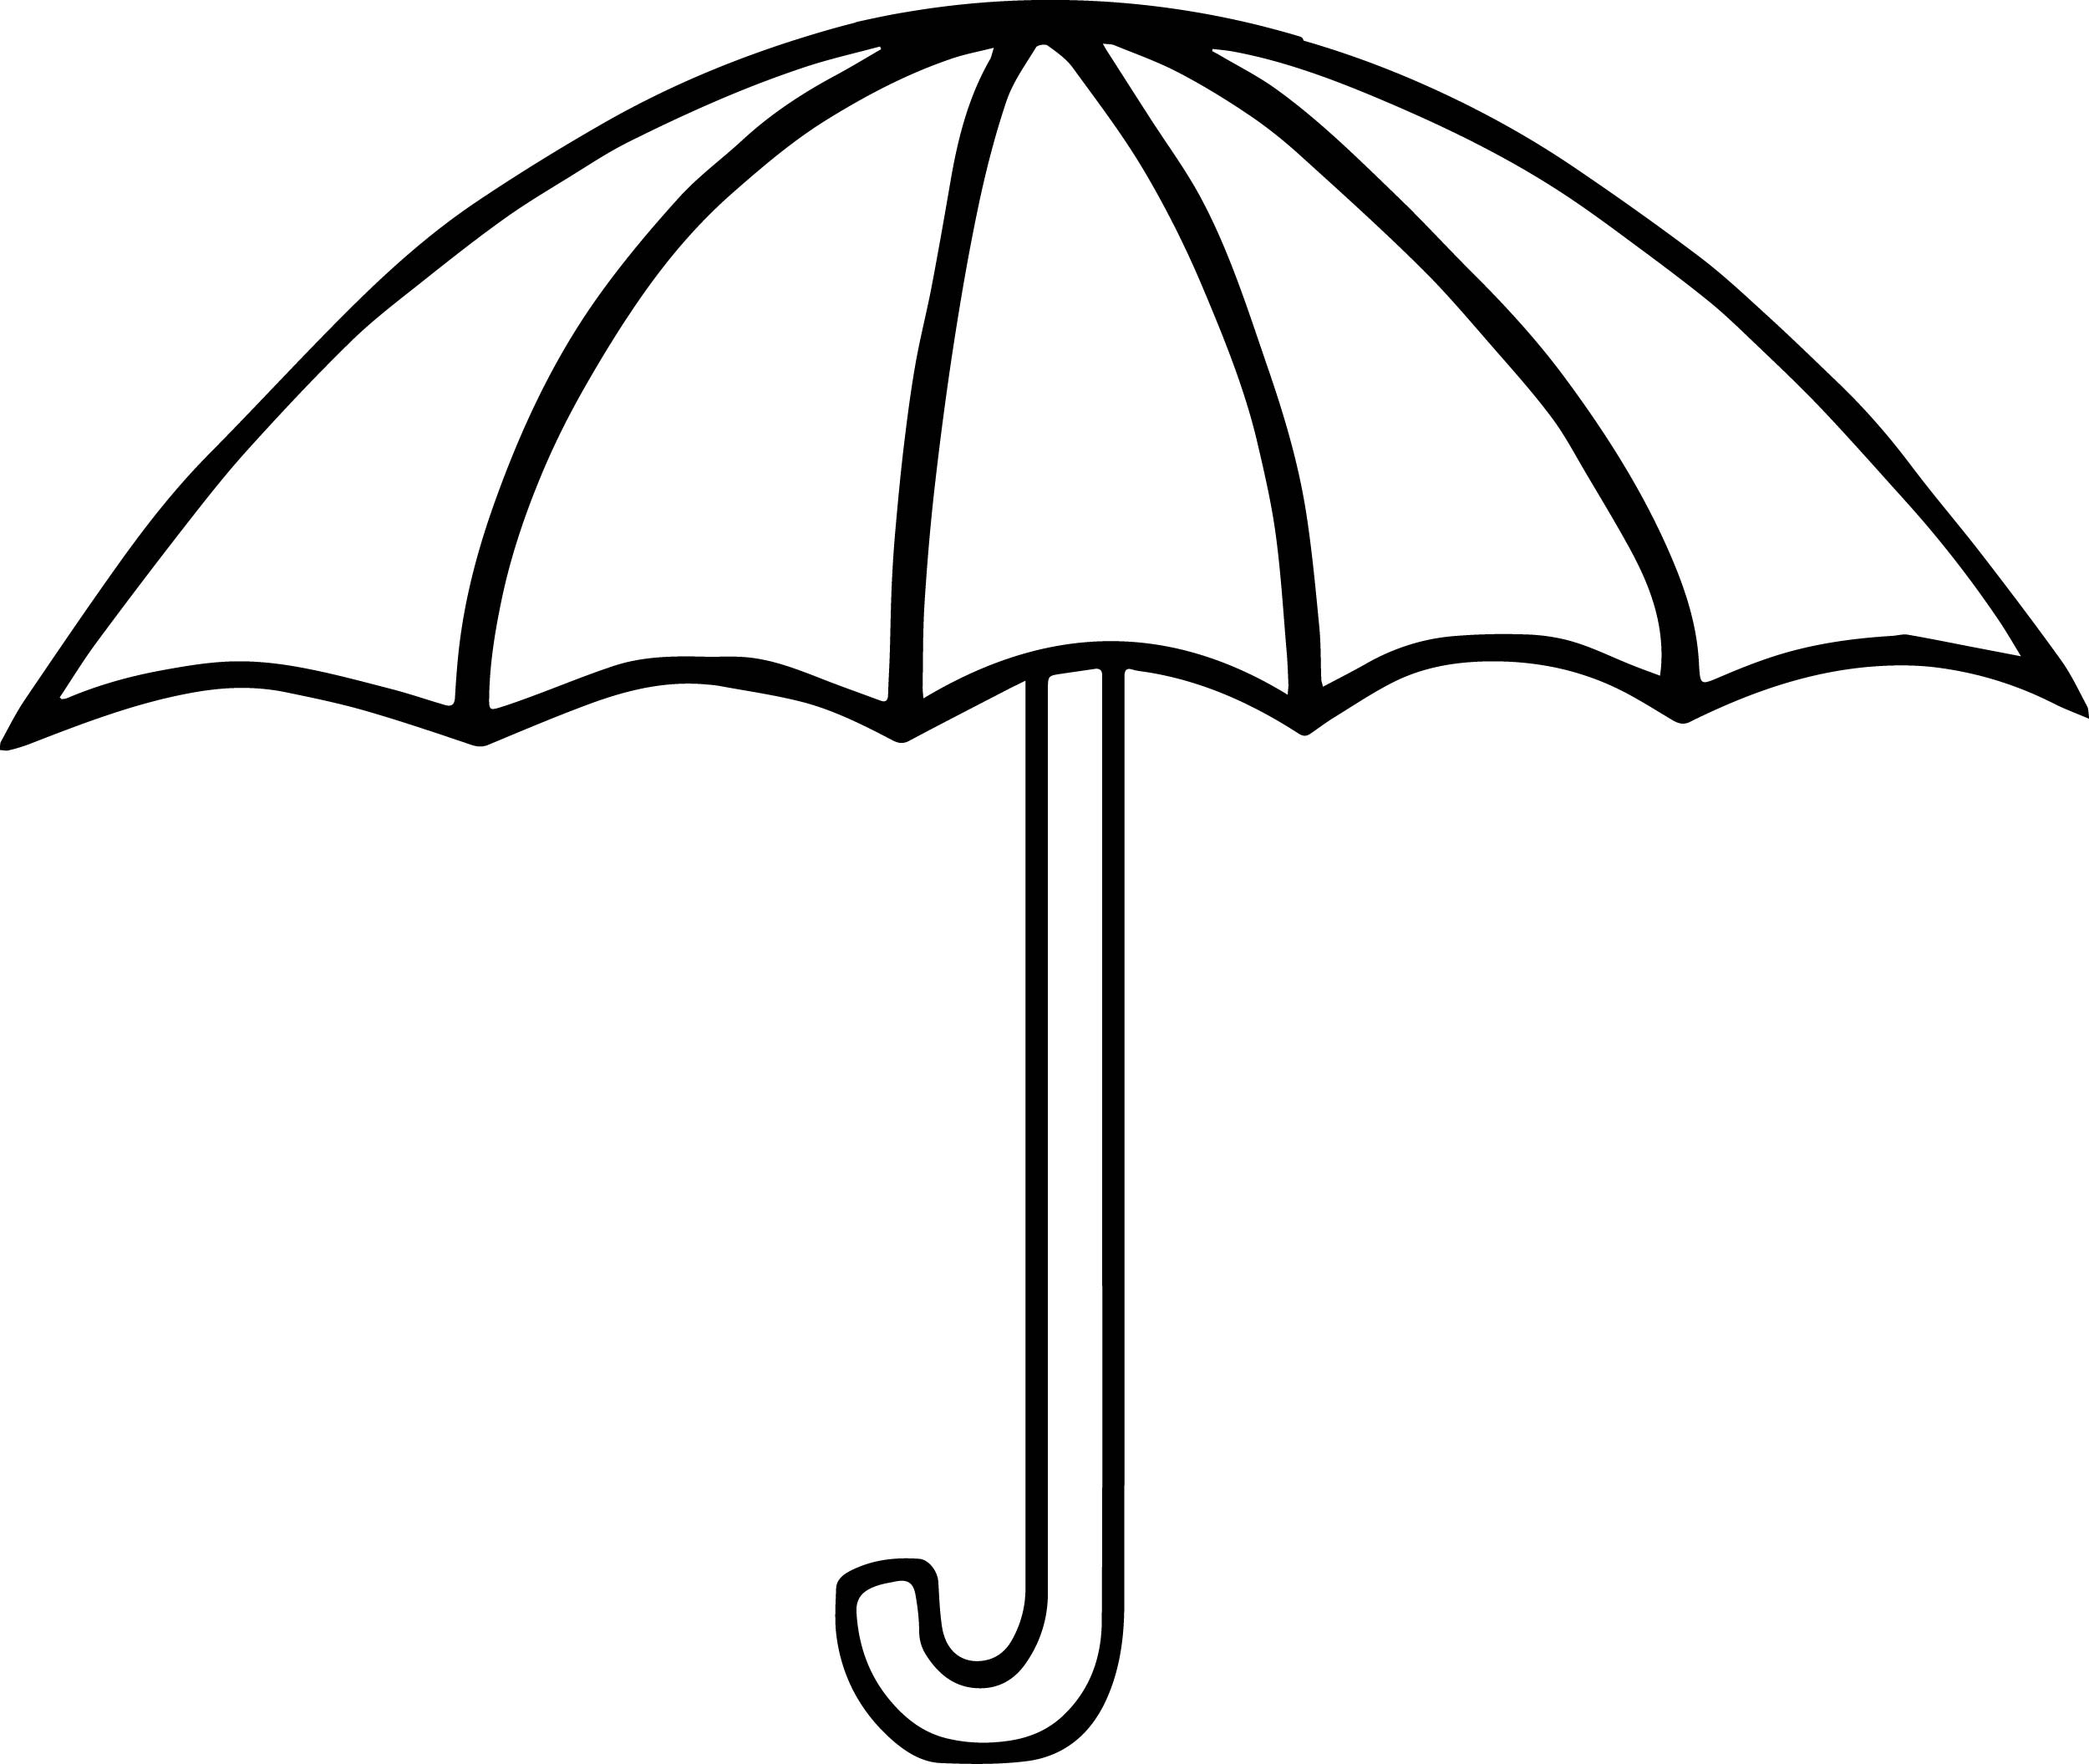 Umbrella Coloring Page Summer Umbrella Coloring Page Wecoloringpage